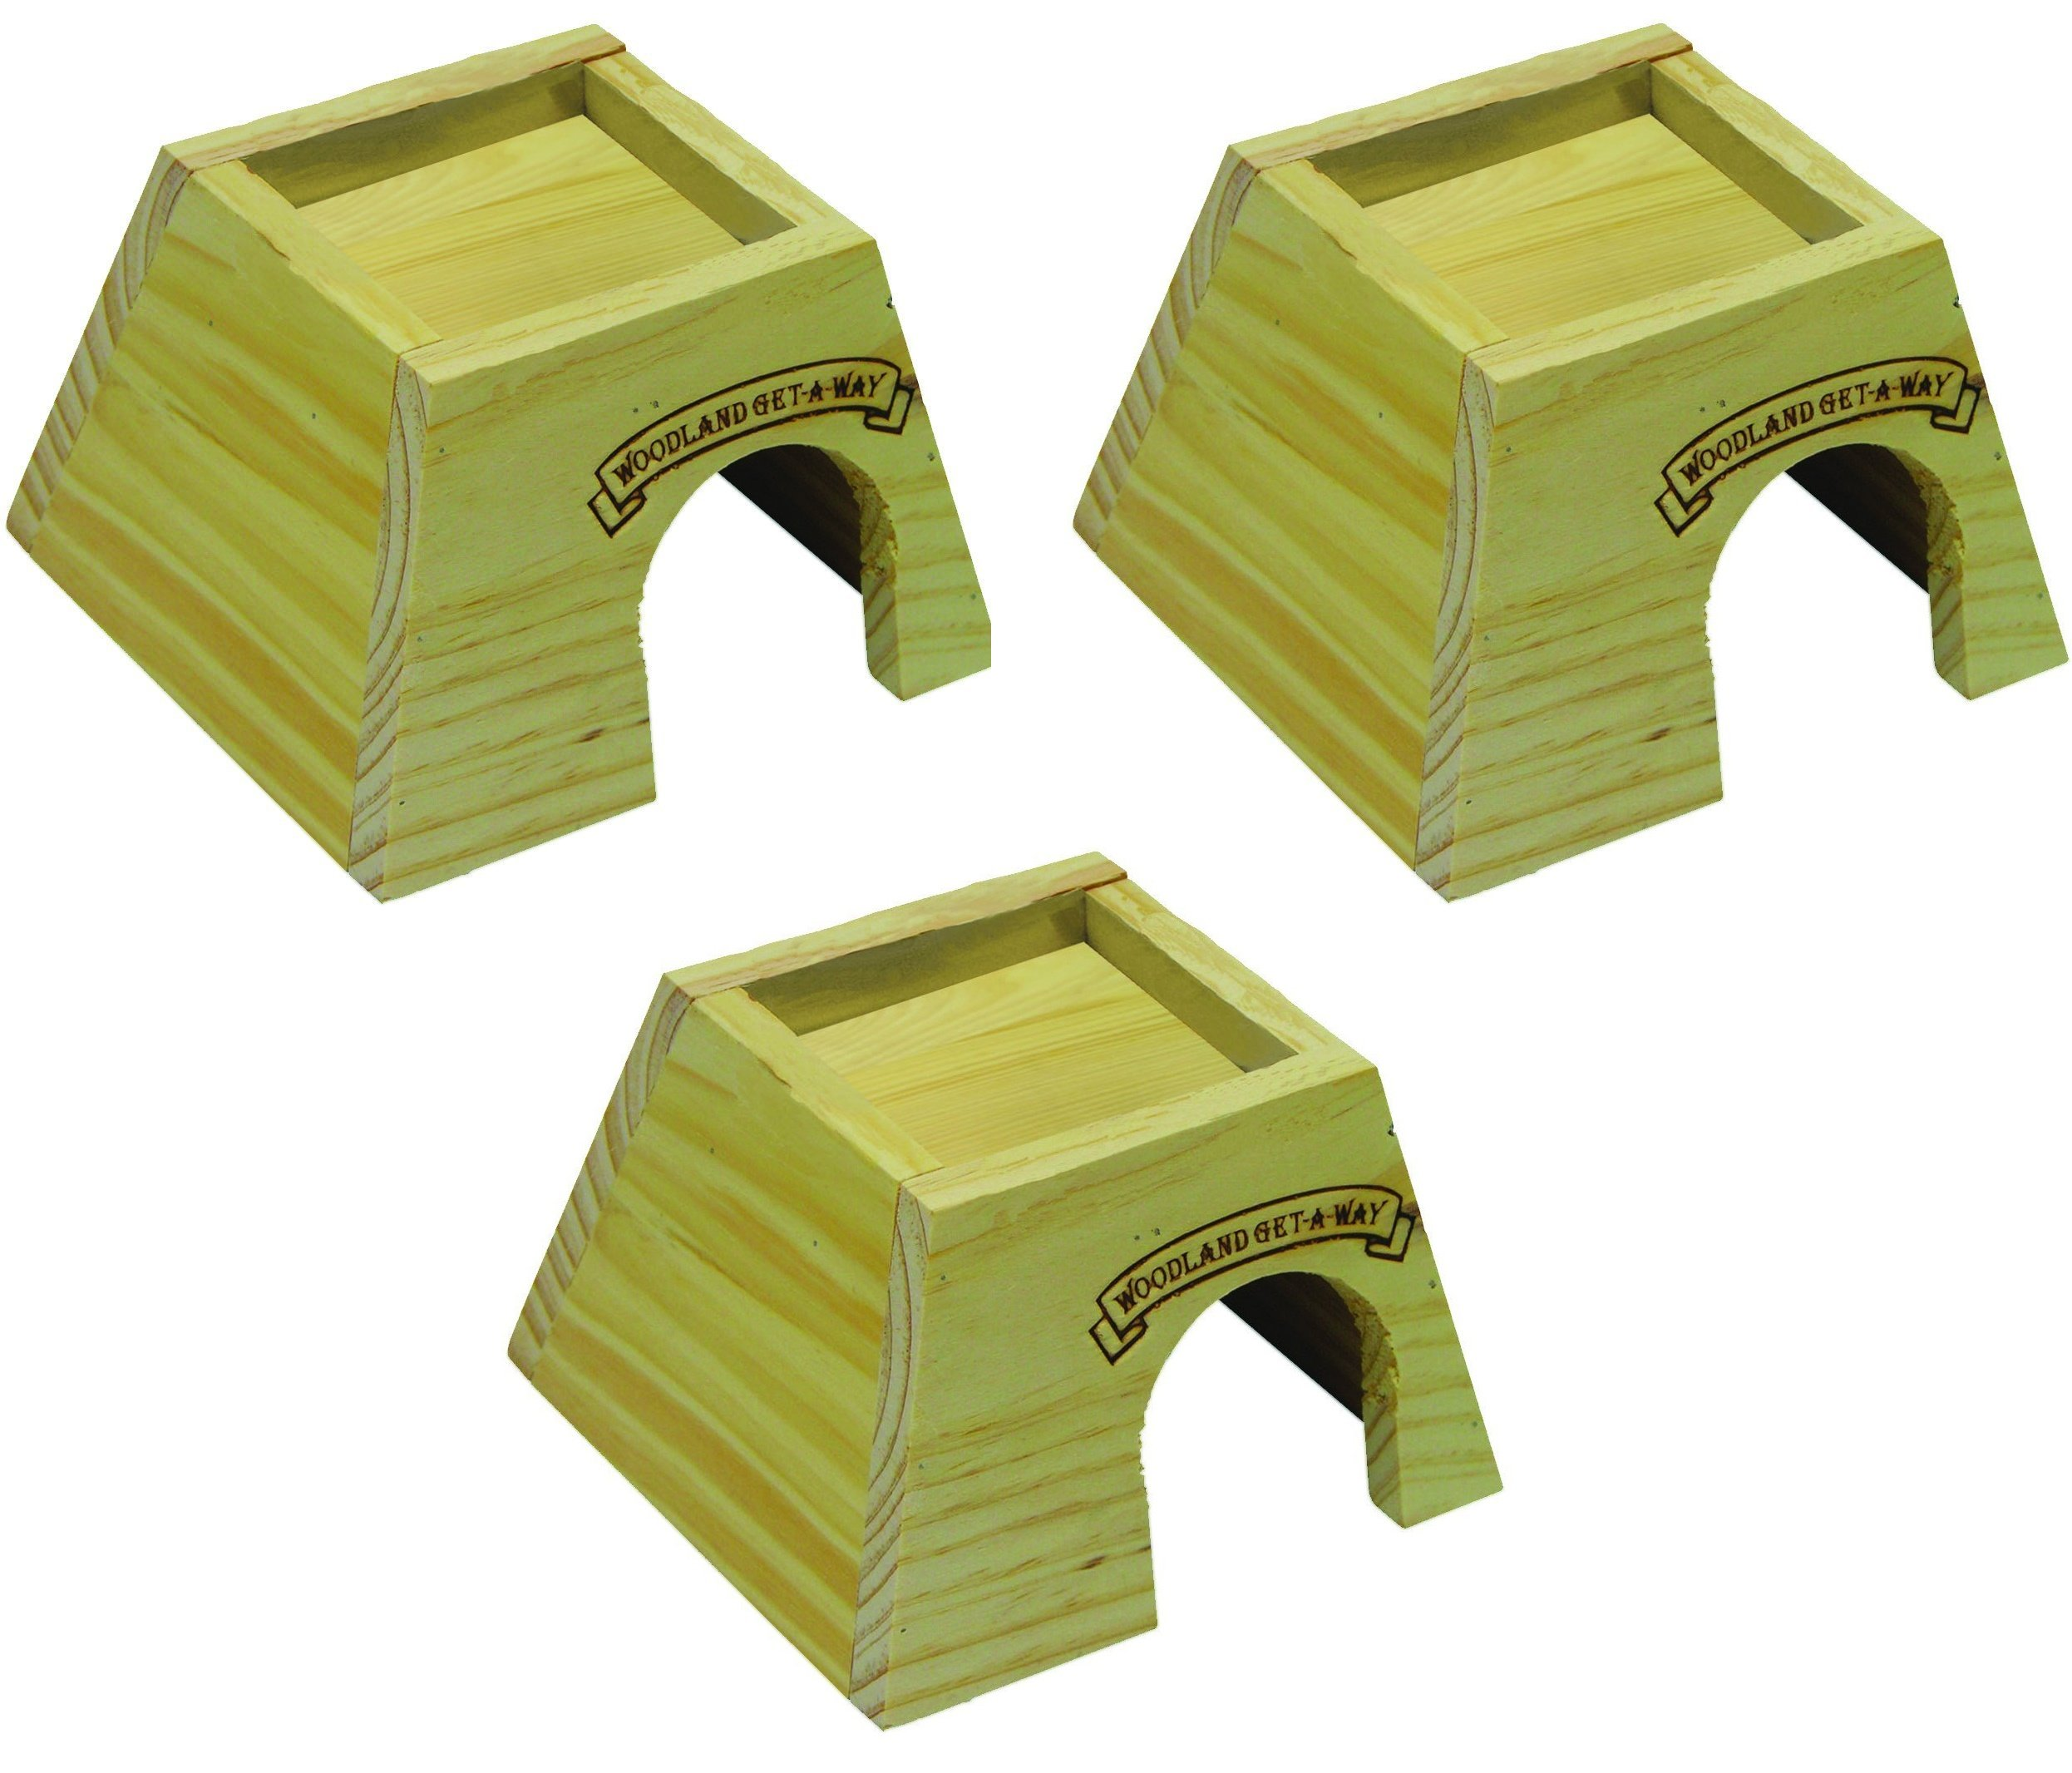 Super Pet Woodland Get-A-Way Small Mouse House (3 Pack) by Super Pet